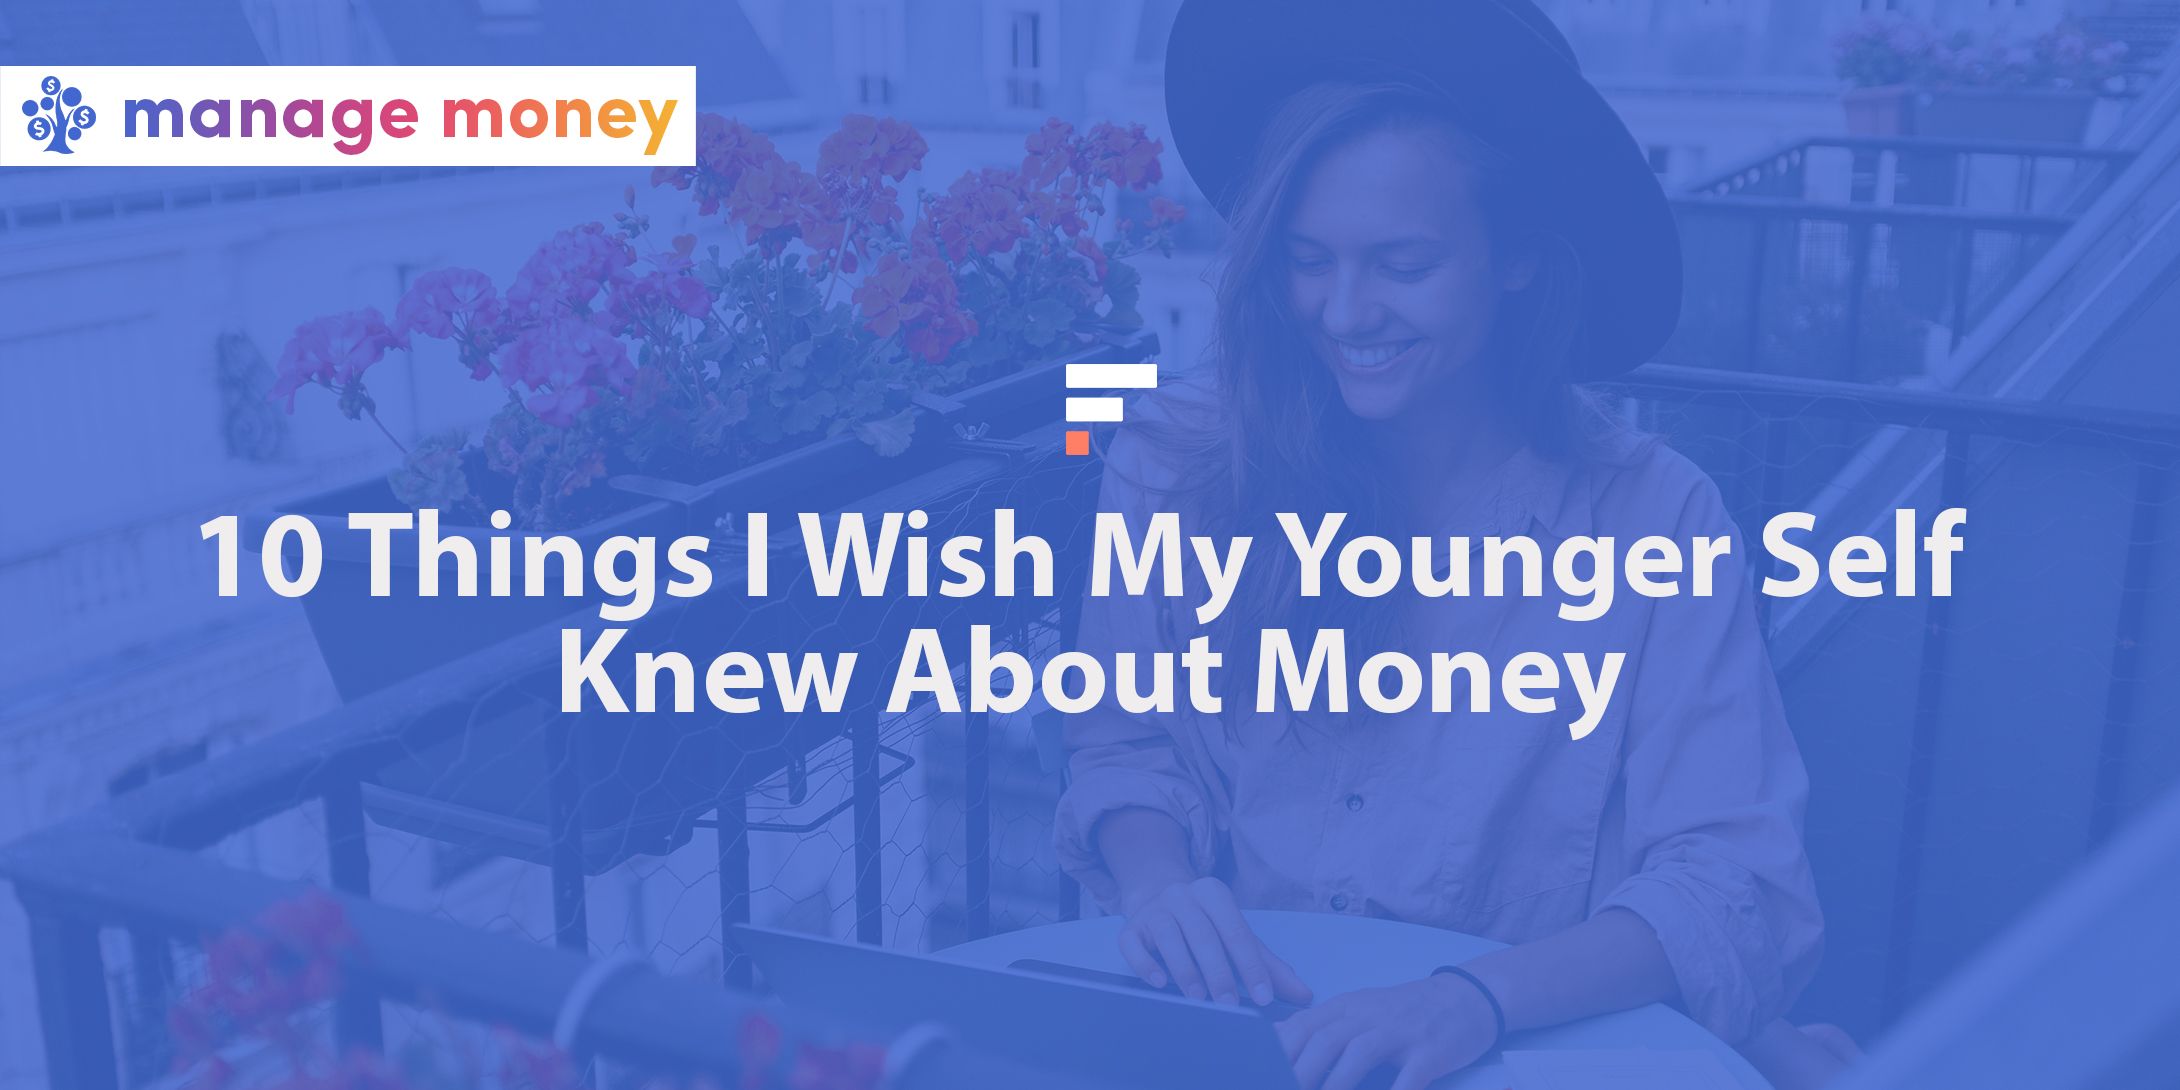 Things I wish my younger self knew about money